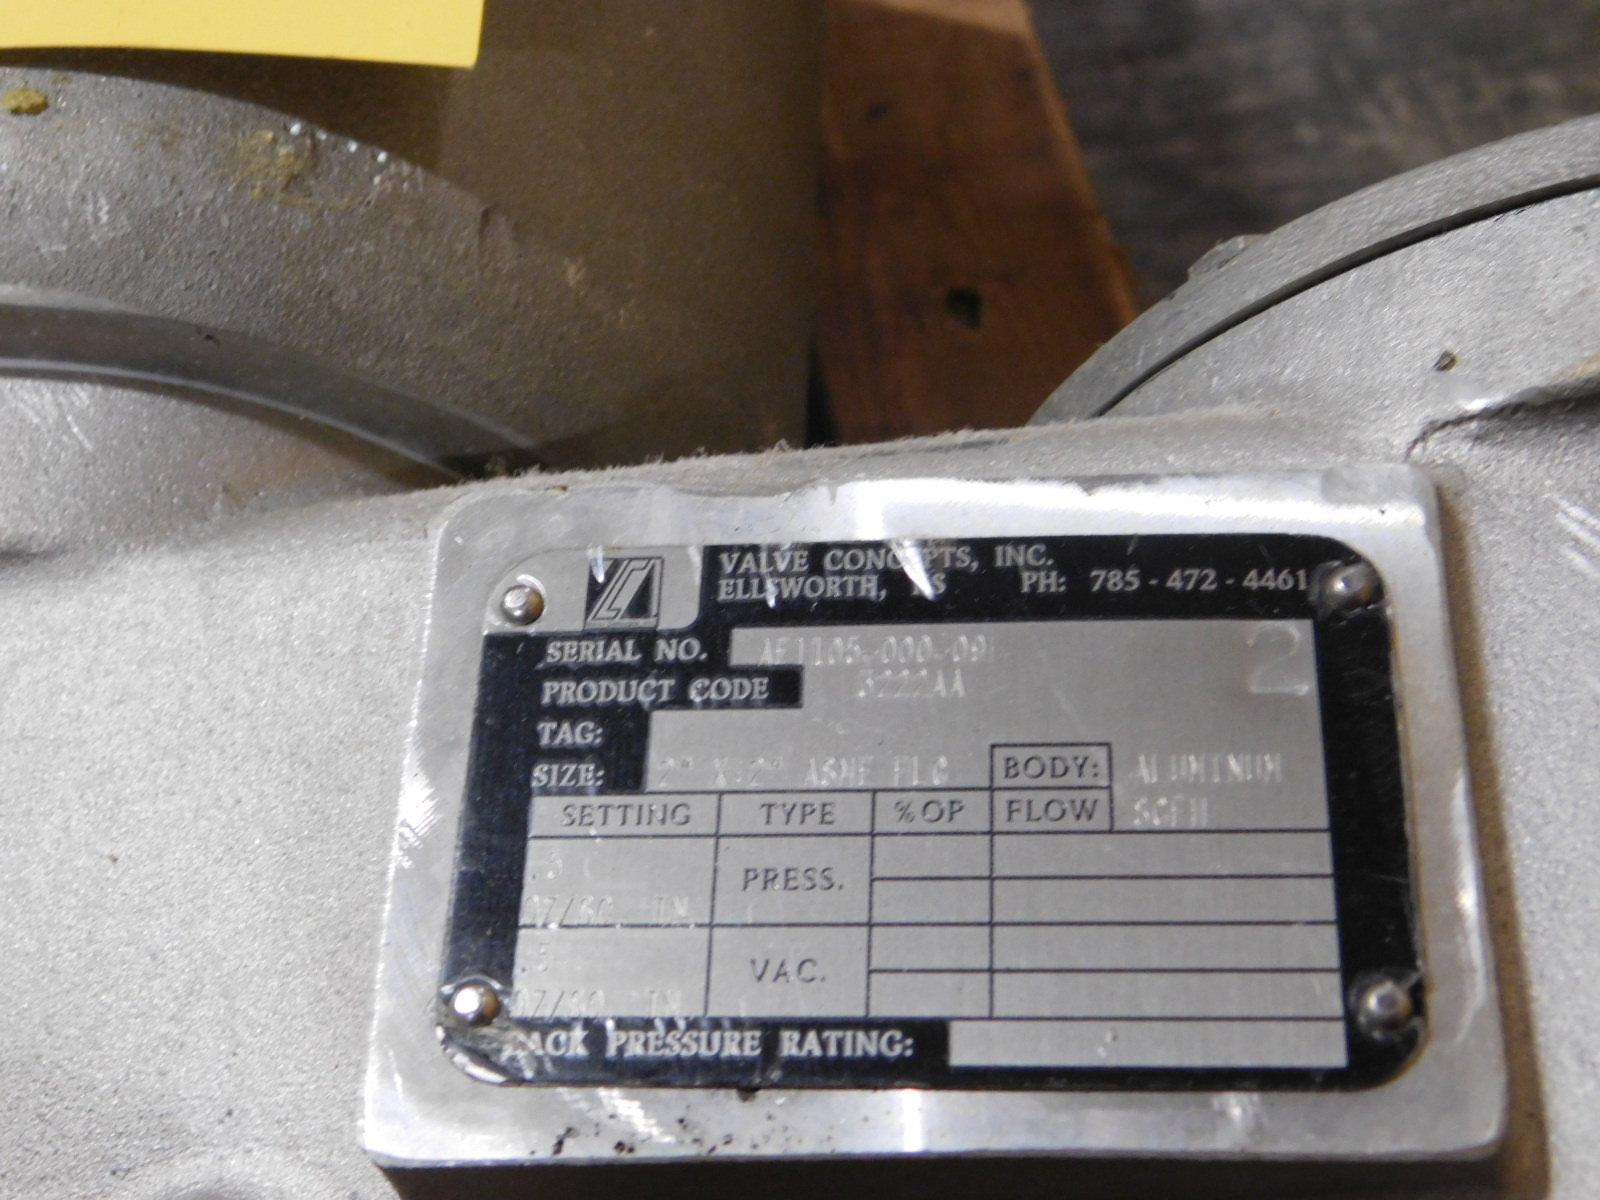 "Lot 44 - Valve Concepts inc.3222AA,2'x2"" ASME FLANGE FLOW SCPH, SN:AE1105-000-09 :equipment located at"